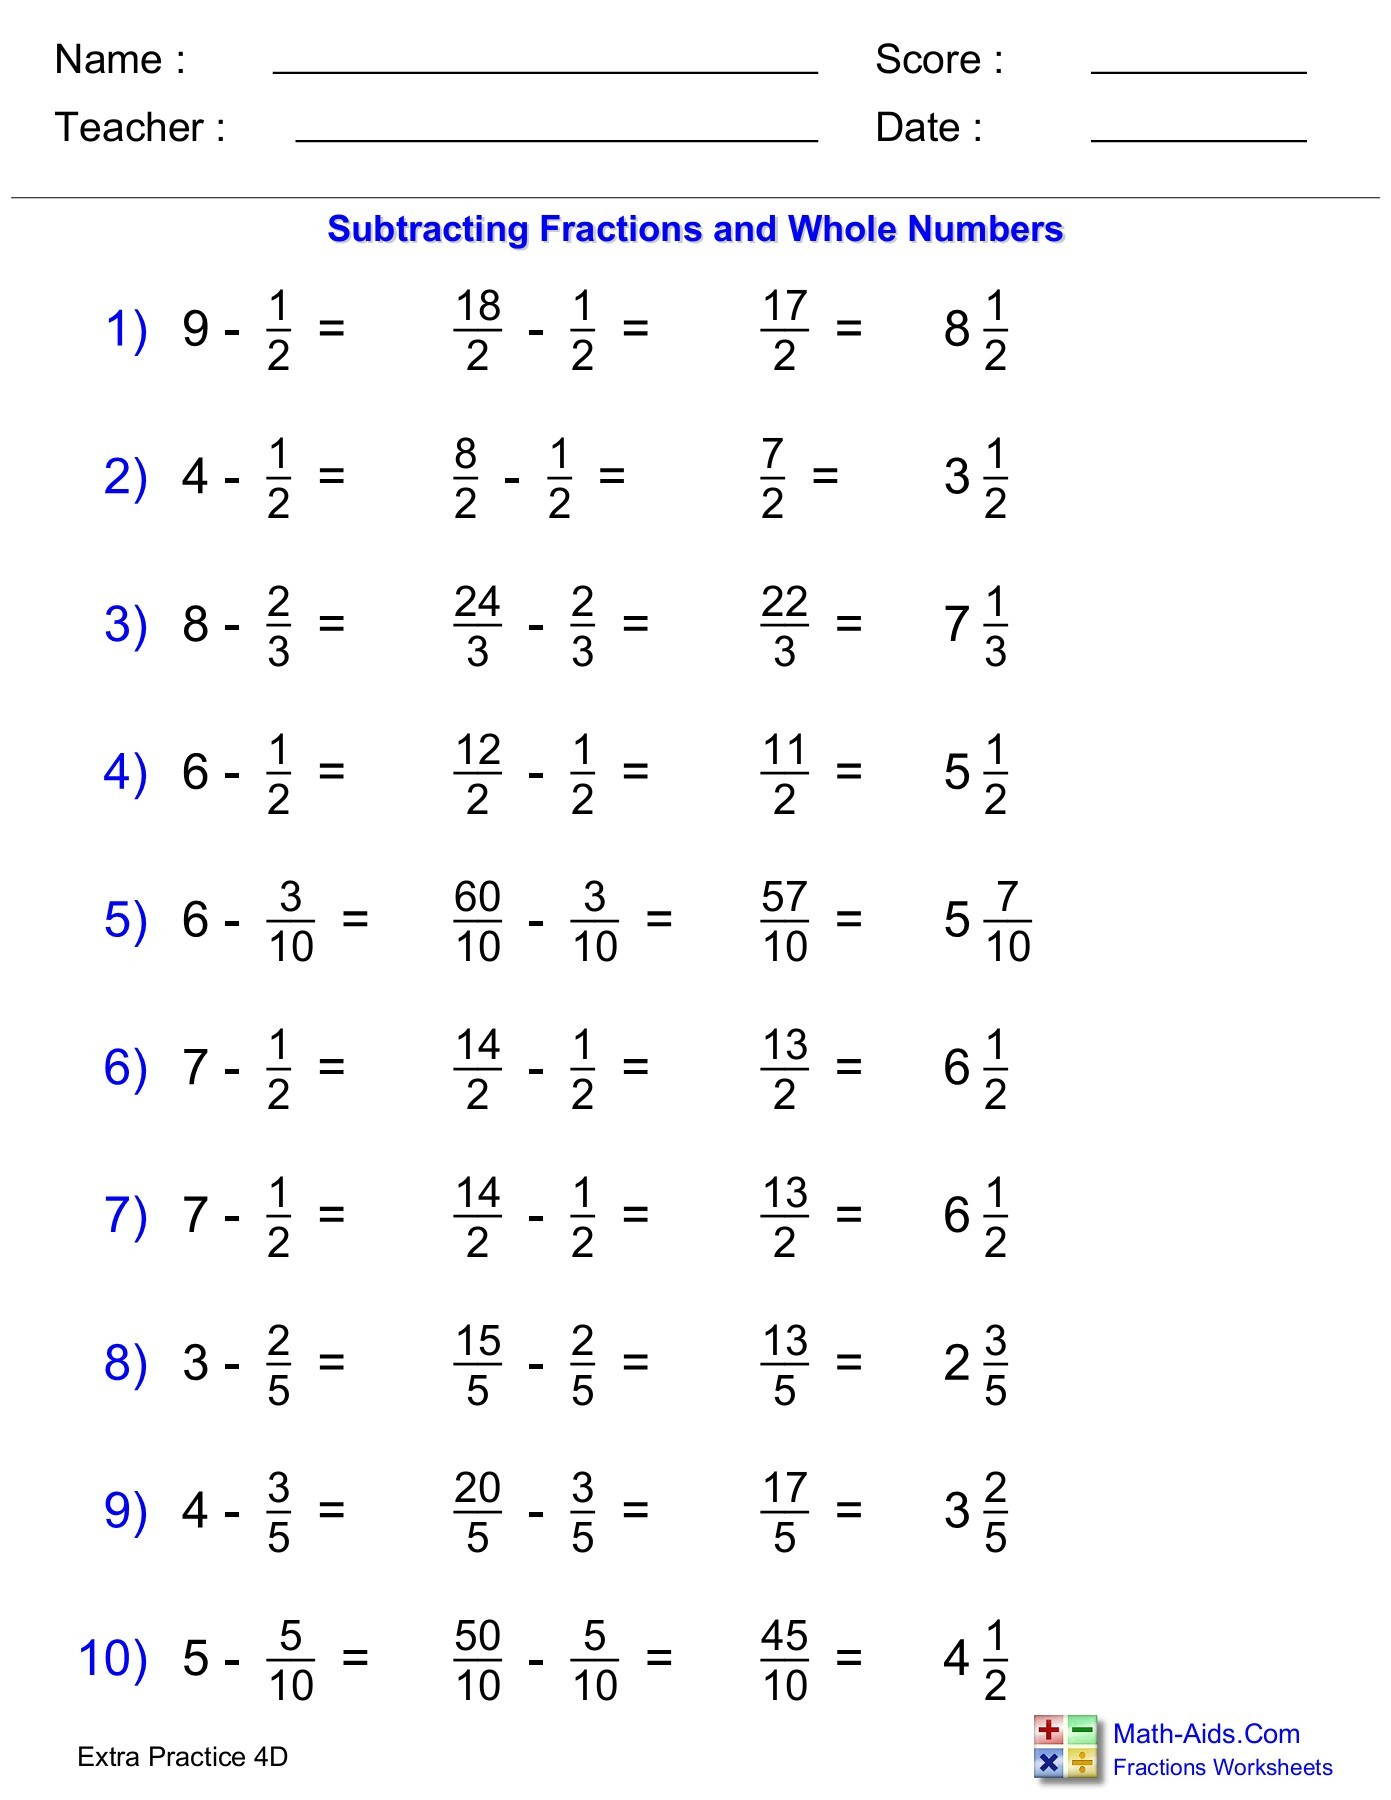 Subtracting Fractions With Whole Numbers